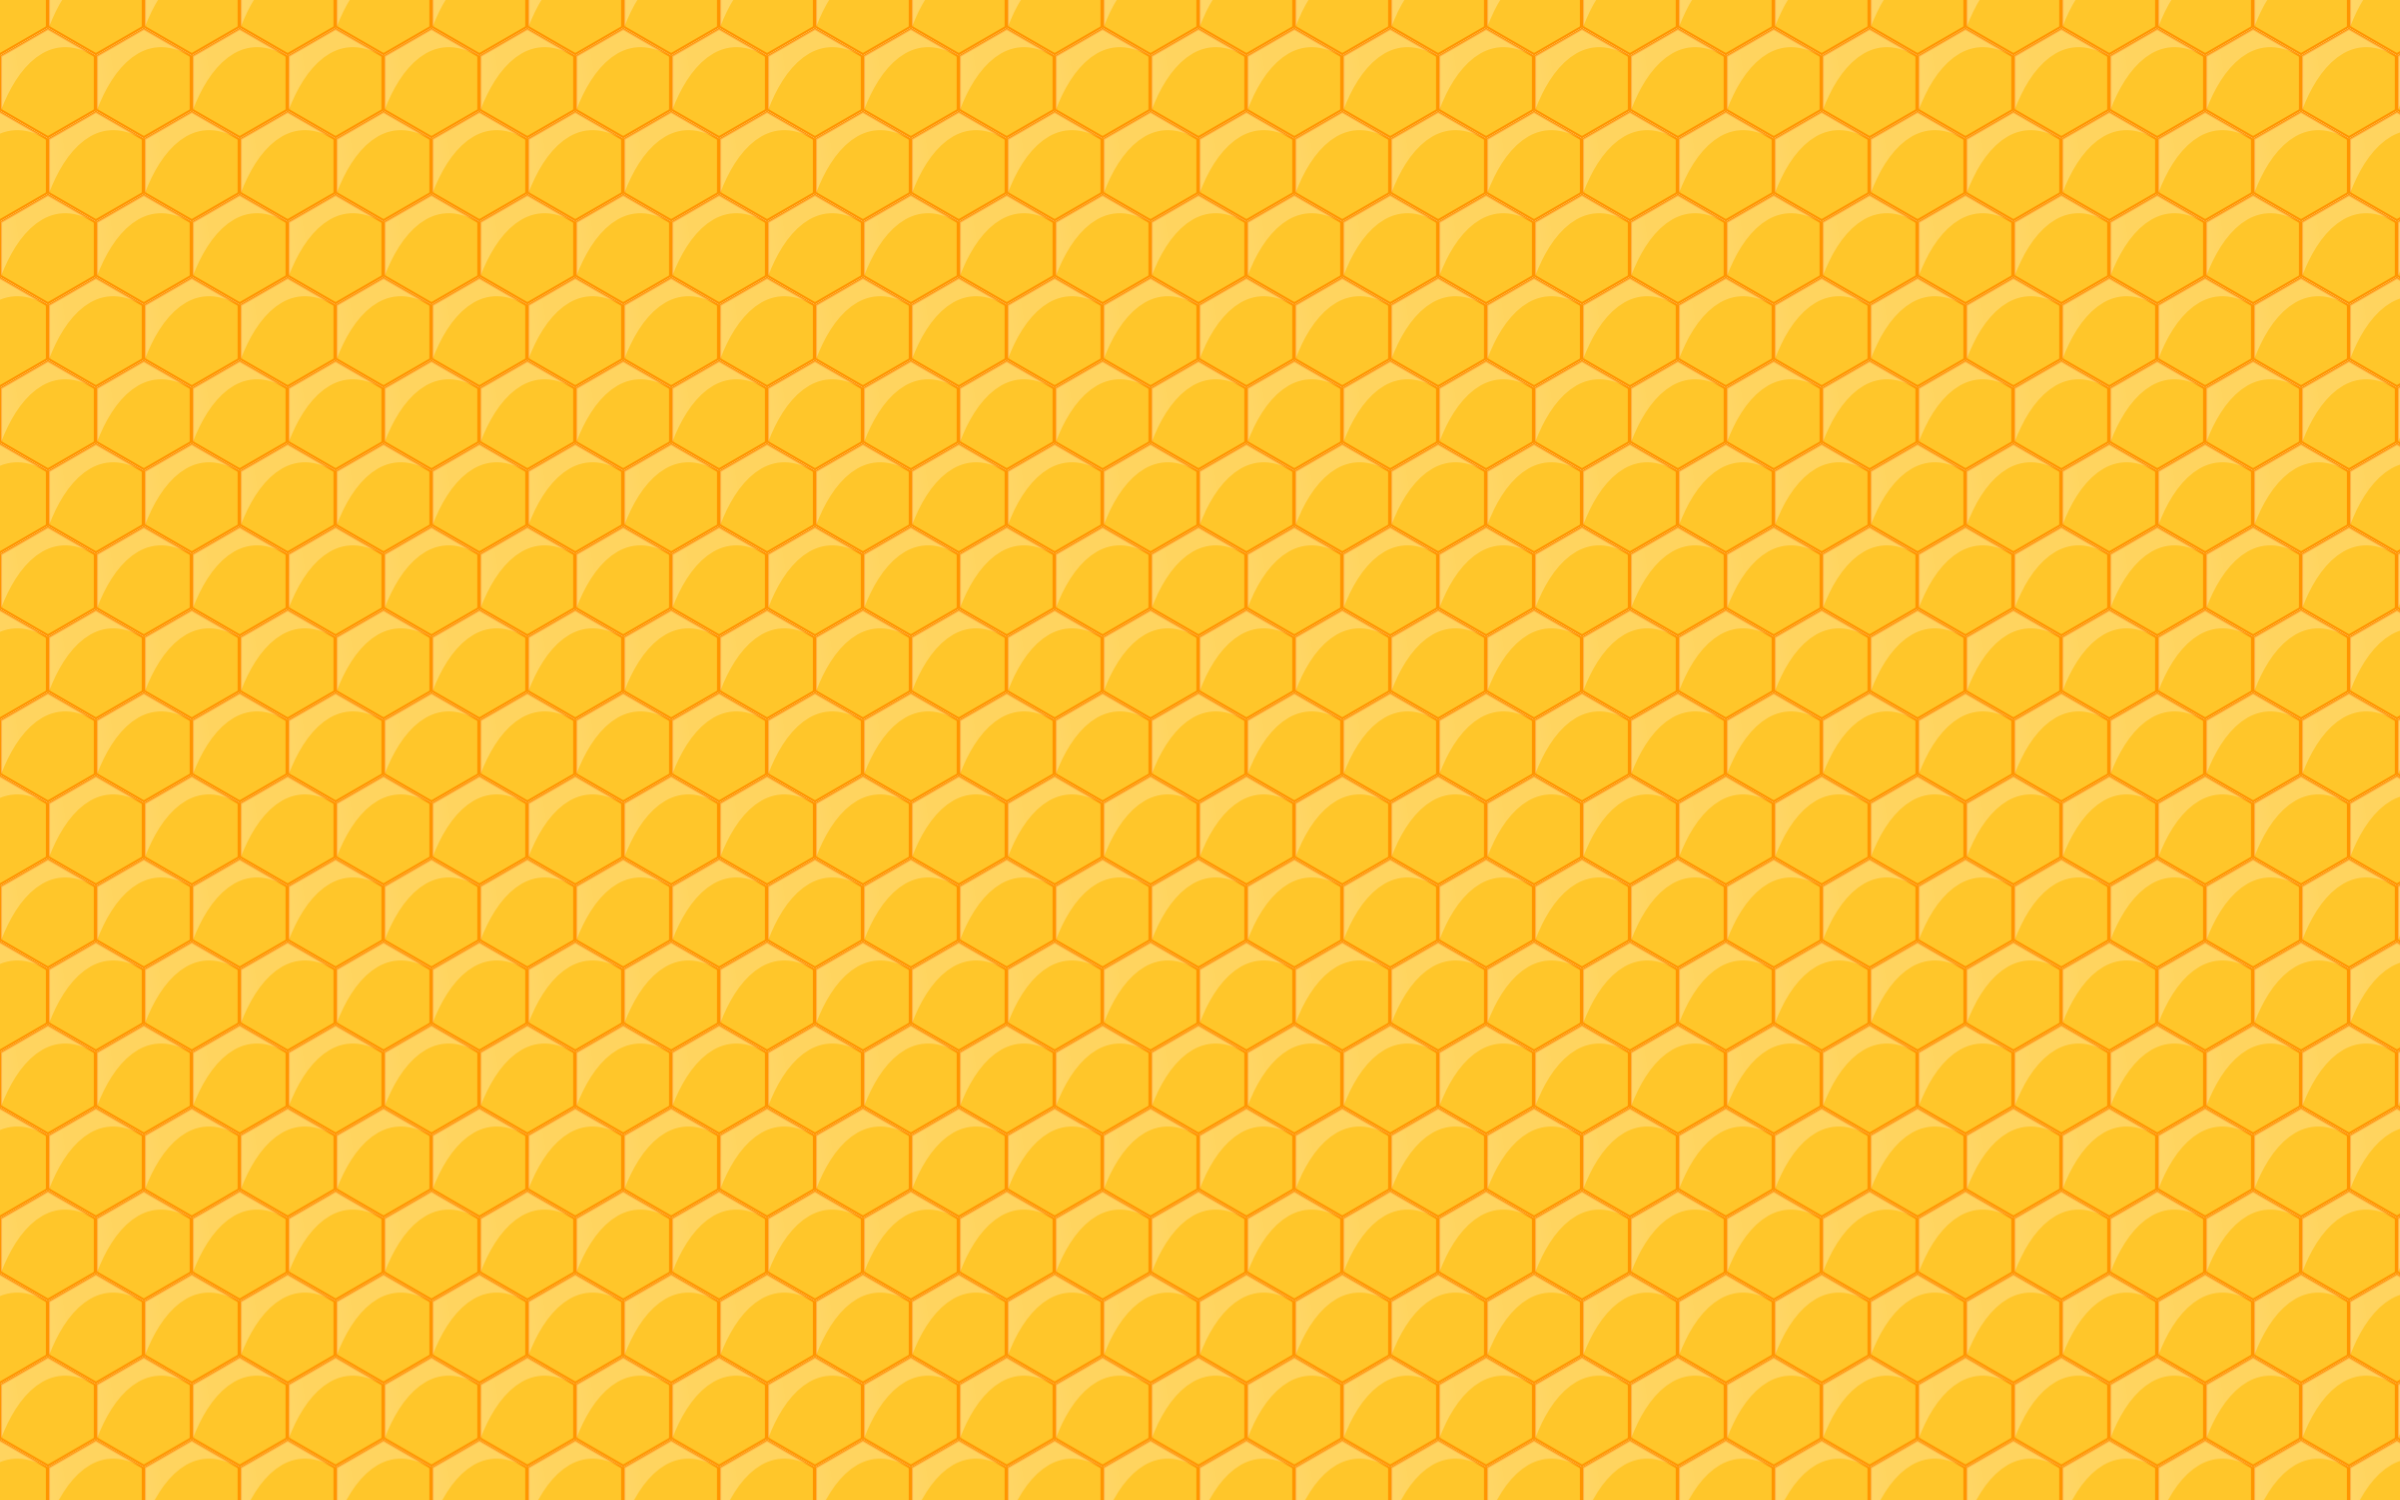 Clipart   Seamless Honeycomb Pattern Template PPT Backgrounds